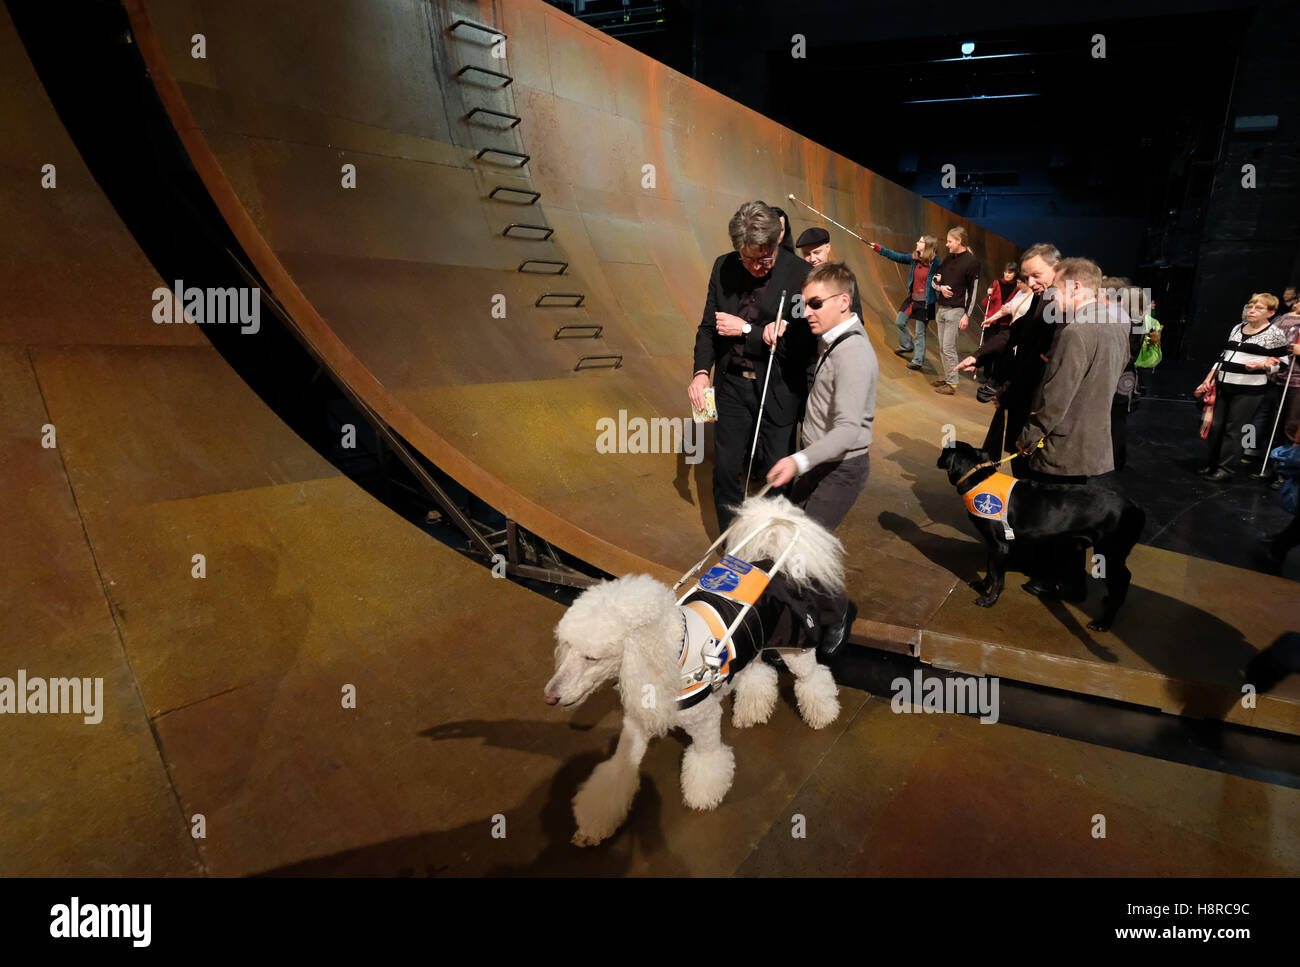 Leipzig, Germany. 18th Nov, 2016. Blind and visually impaired people as well as their companions explore the stage - Stock Image